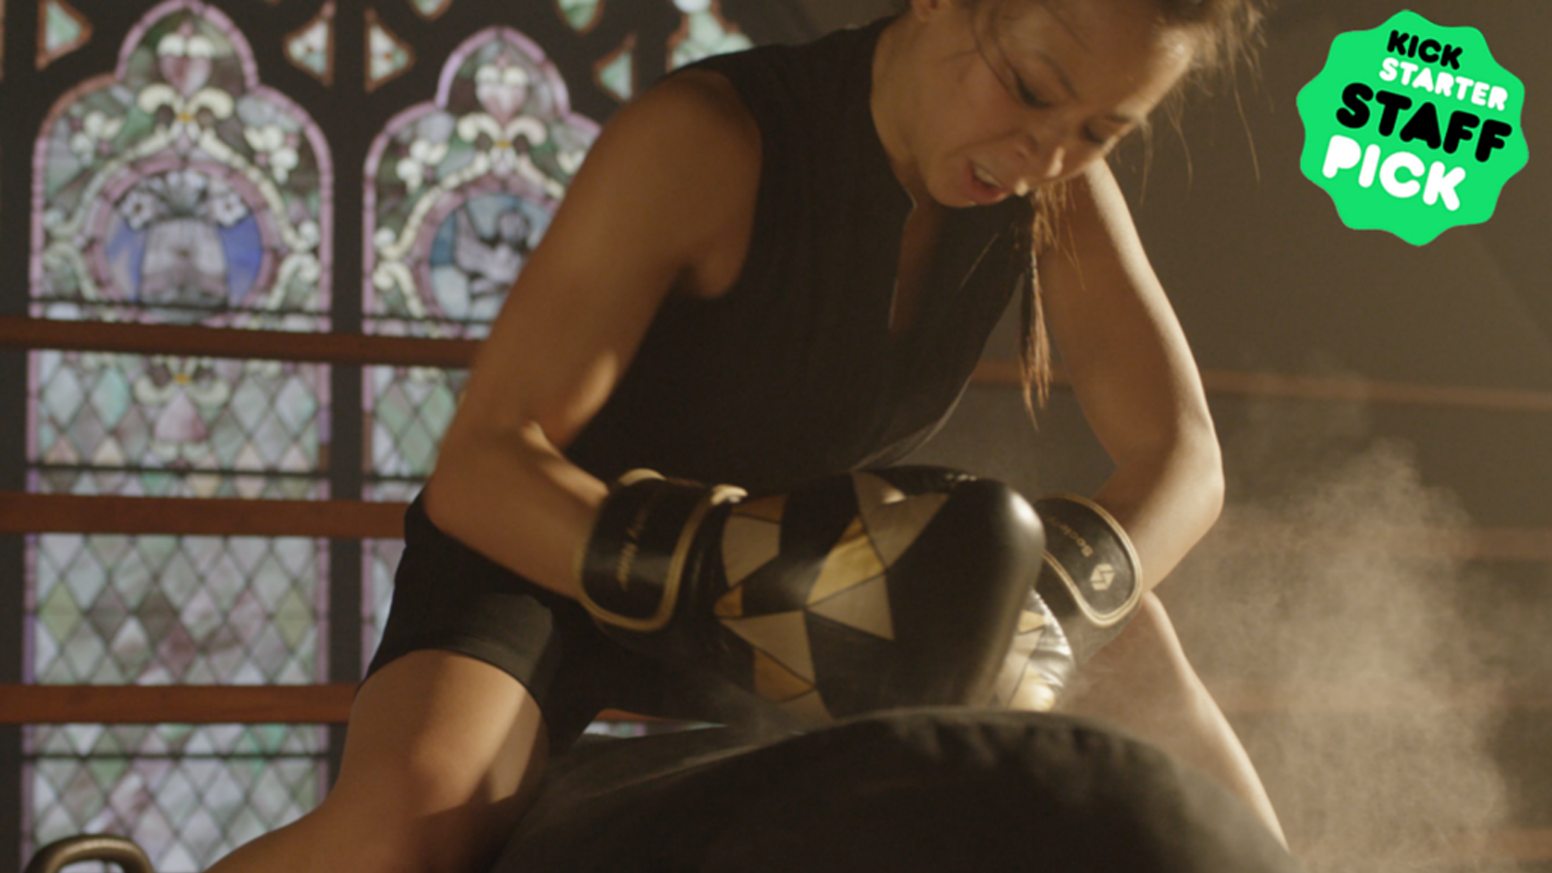 We are the brand for strong, empowered, diverse female athletes who are fighters in and out of the ring.